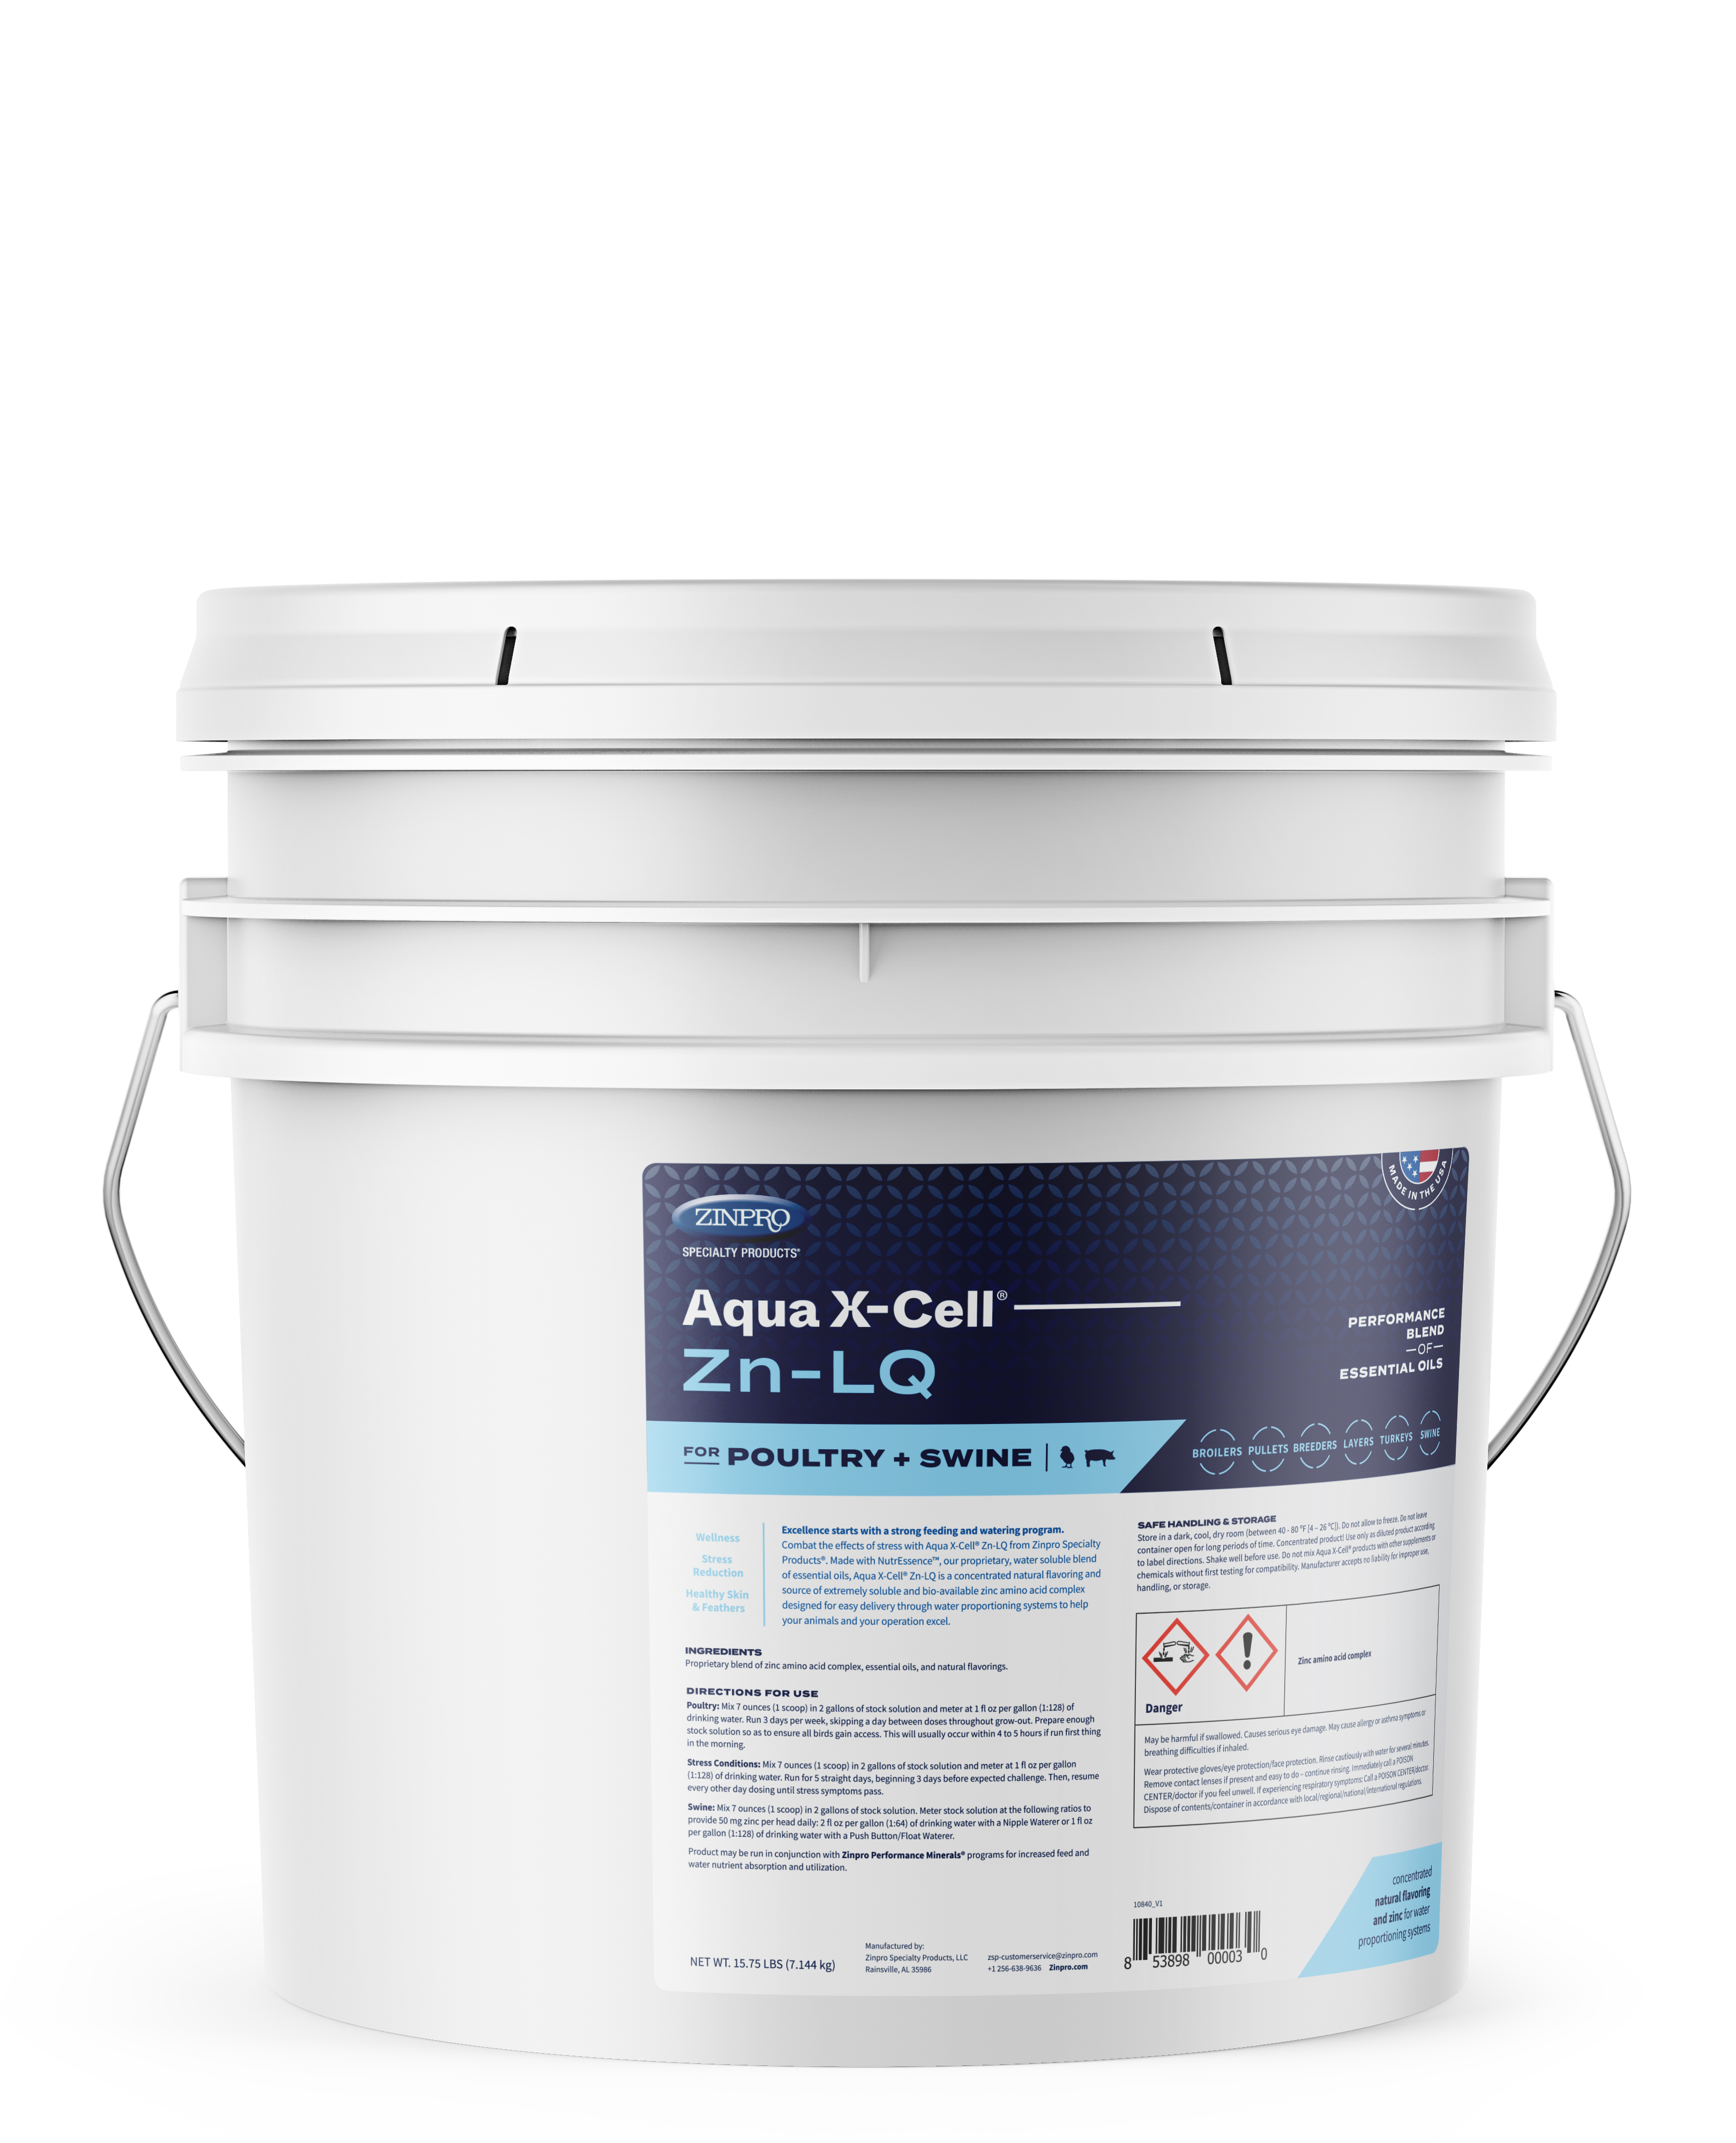 AquaX-Cell_Zn-LQ_Bucket